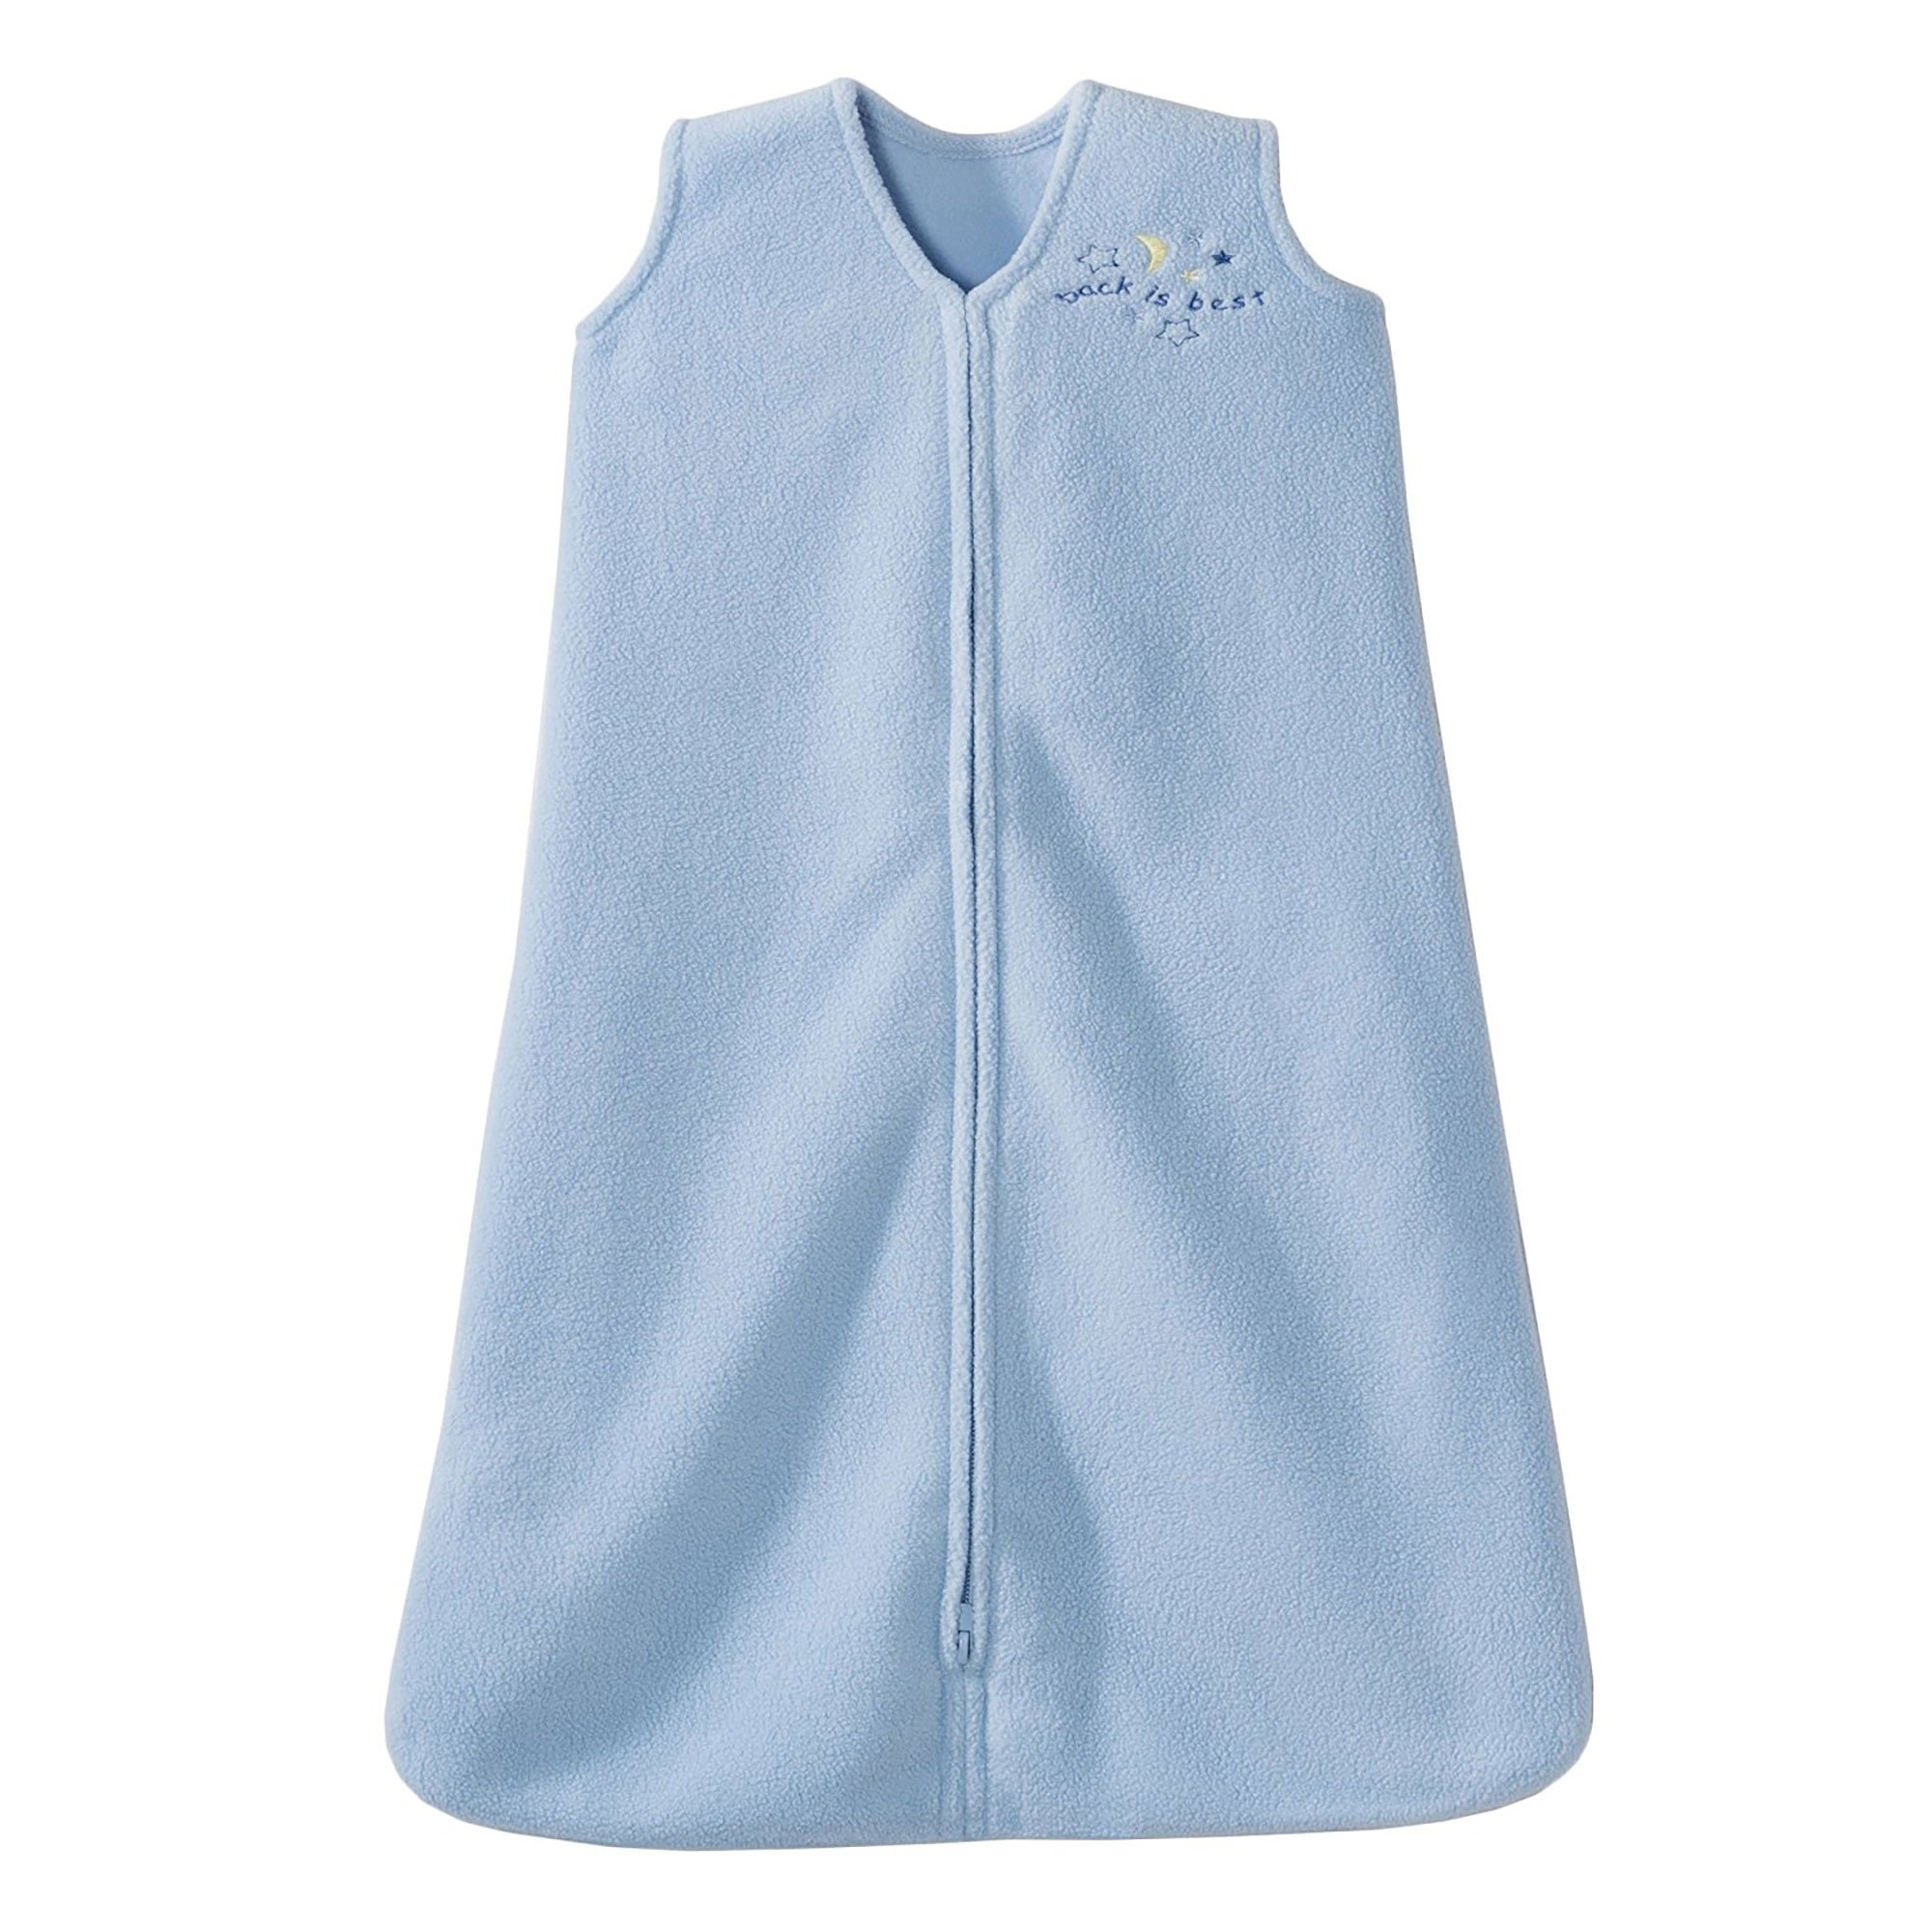 HALO SleepSack Micro-Fleece Wearable Blanket, Baby Blue, Medium